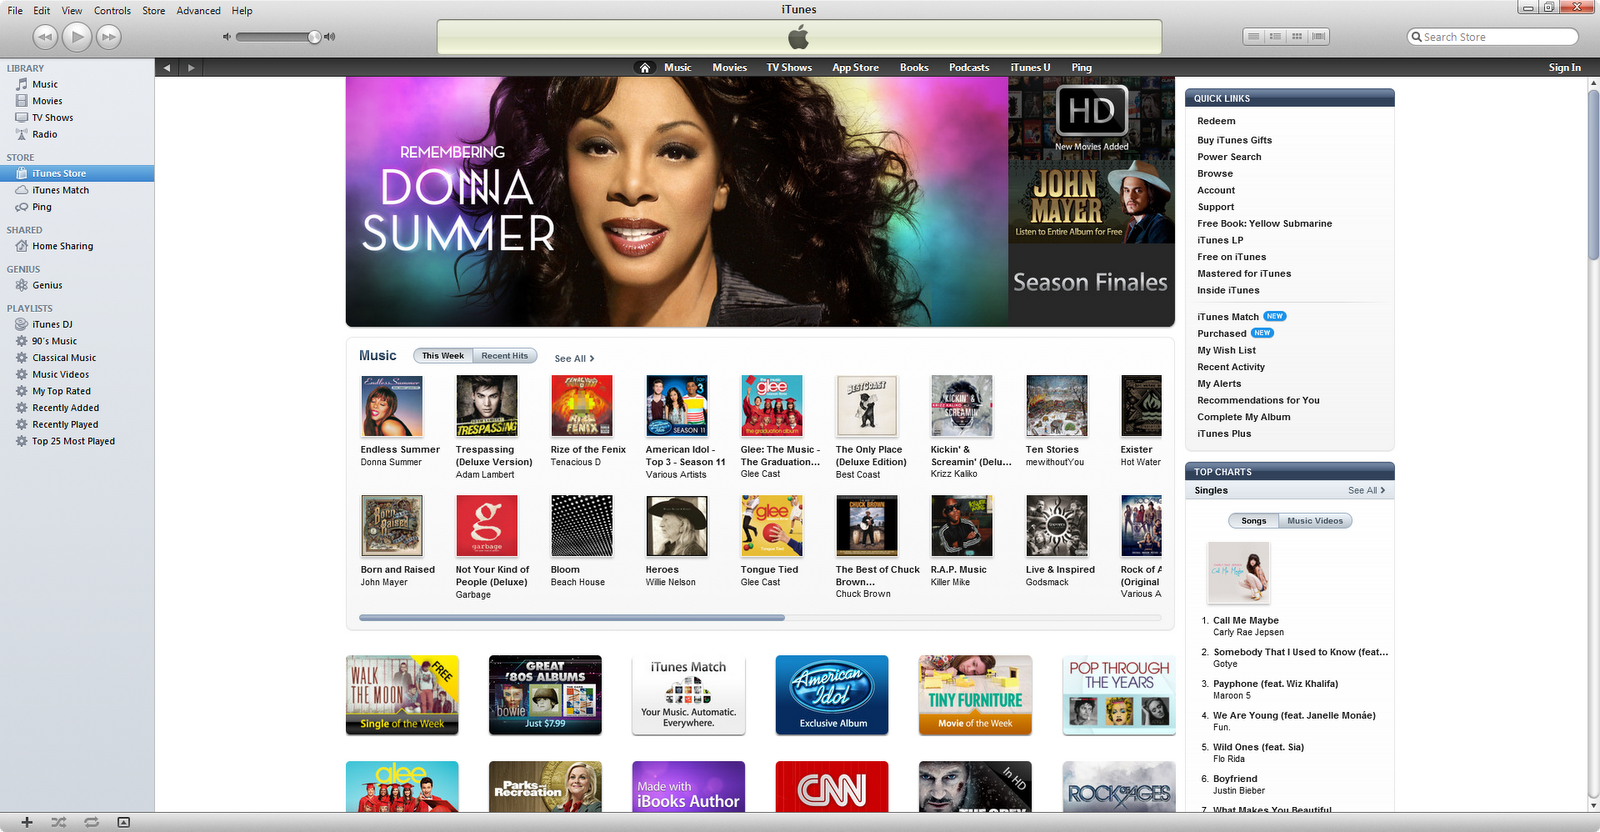 how to create a uk itunes account without credit card